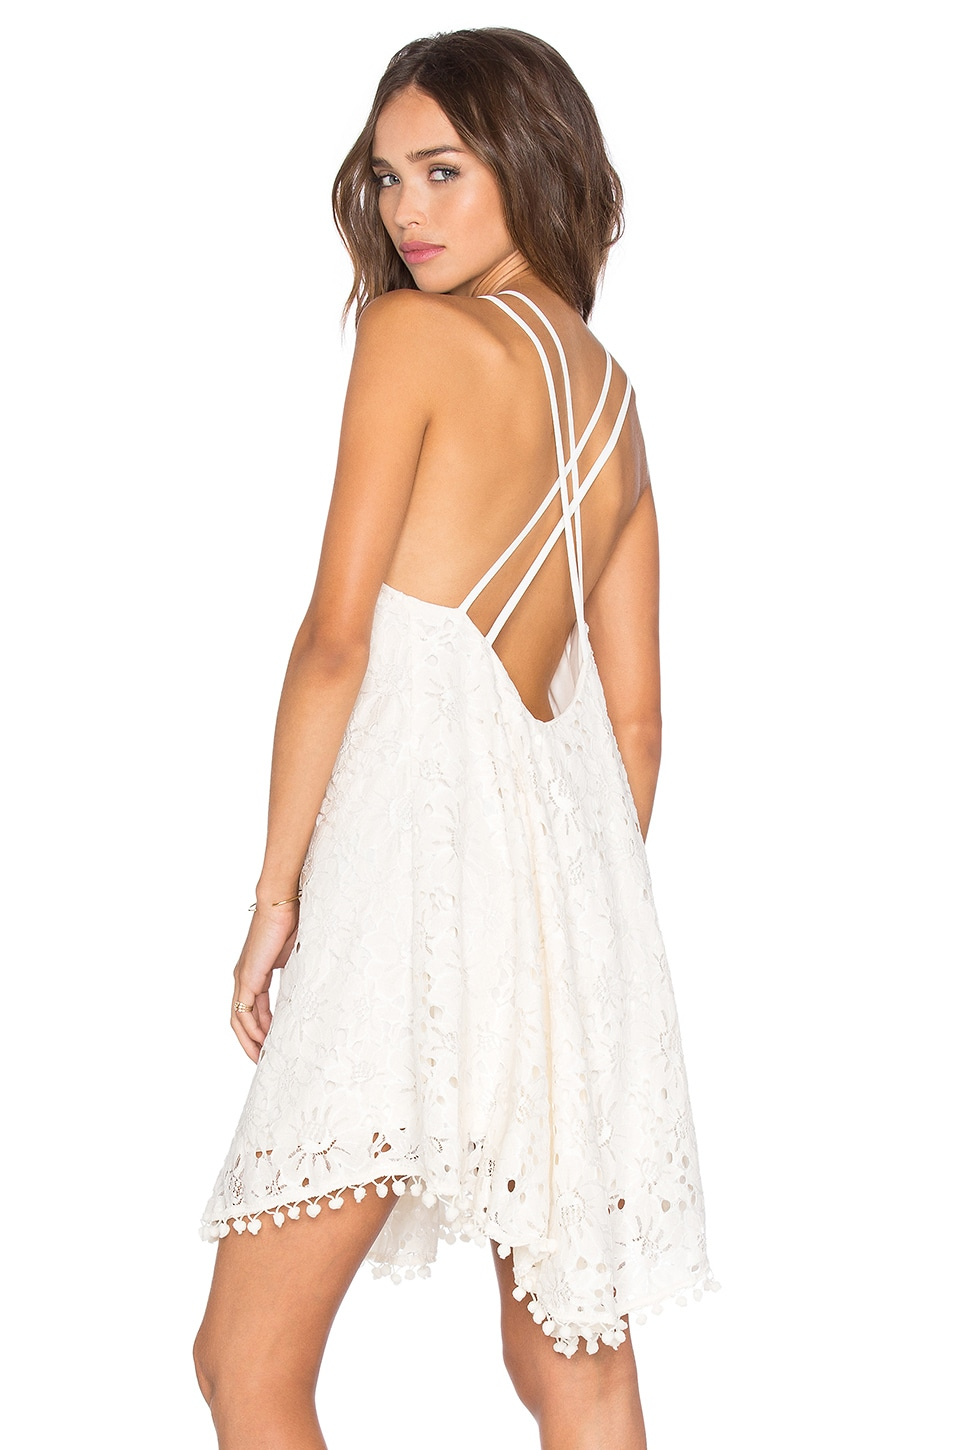 Lucy Paris Kate Criss Cross Dress in White